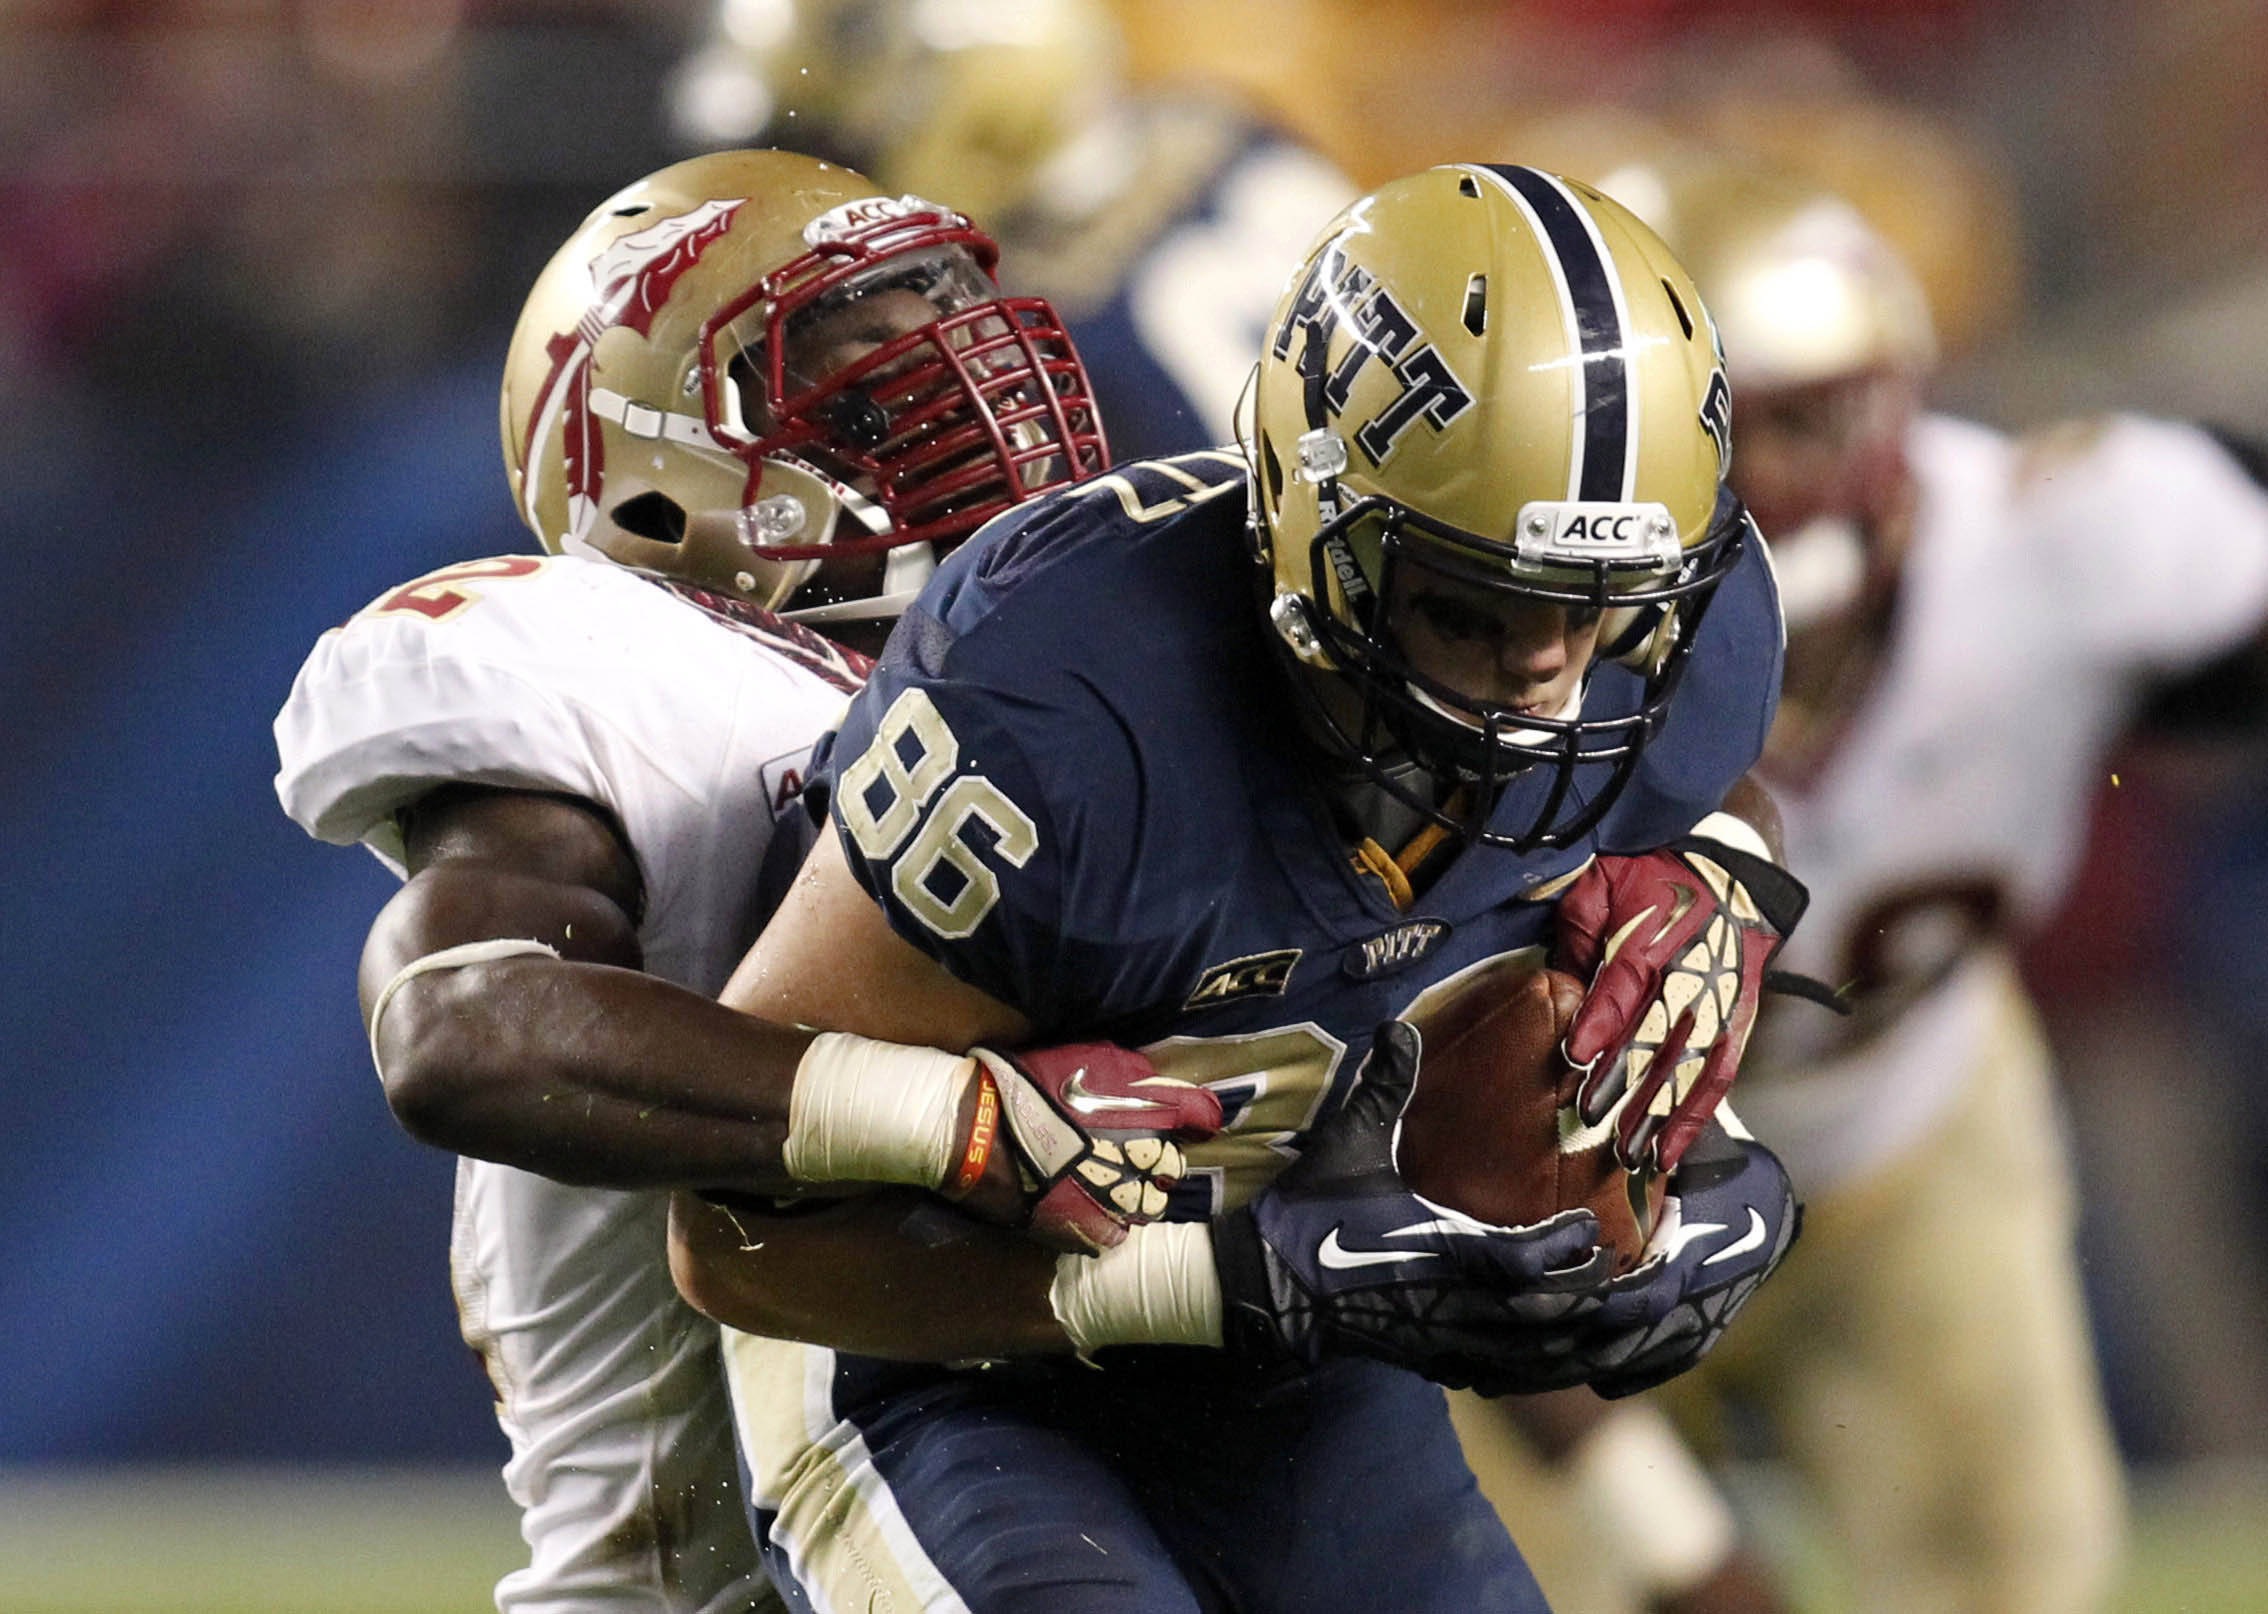 Pittsburgh Panthers tight end J.P. Holtz (86) runs after a pass reception as Florida State Seminoles linebacker Matthew Thomas (12) defends during the second quarter at Heinz Field. Mandatory Credit: Charles LeClaire-USA TODAY Sports